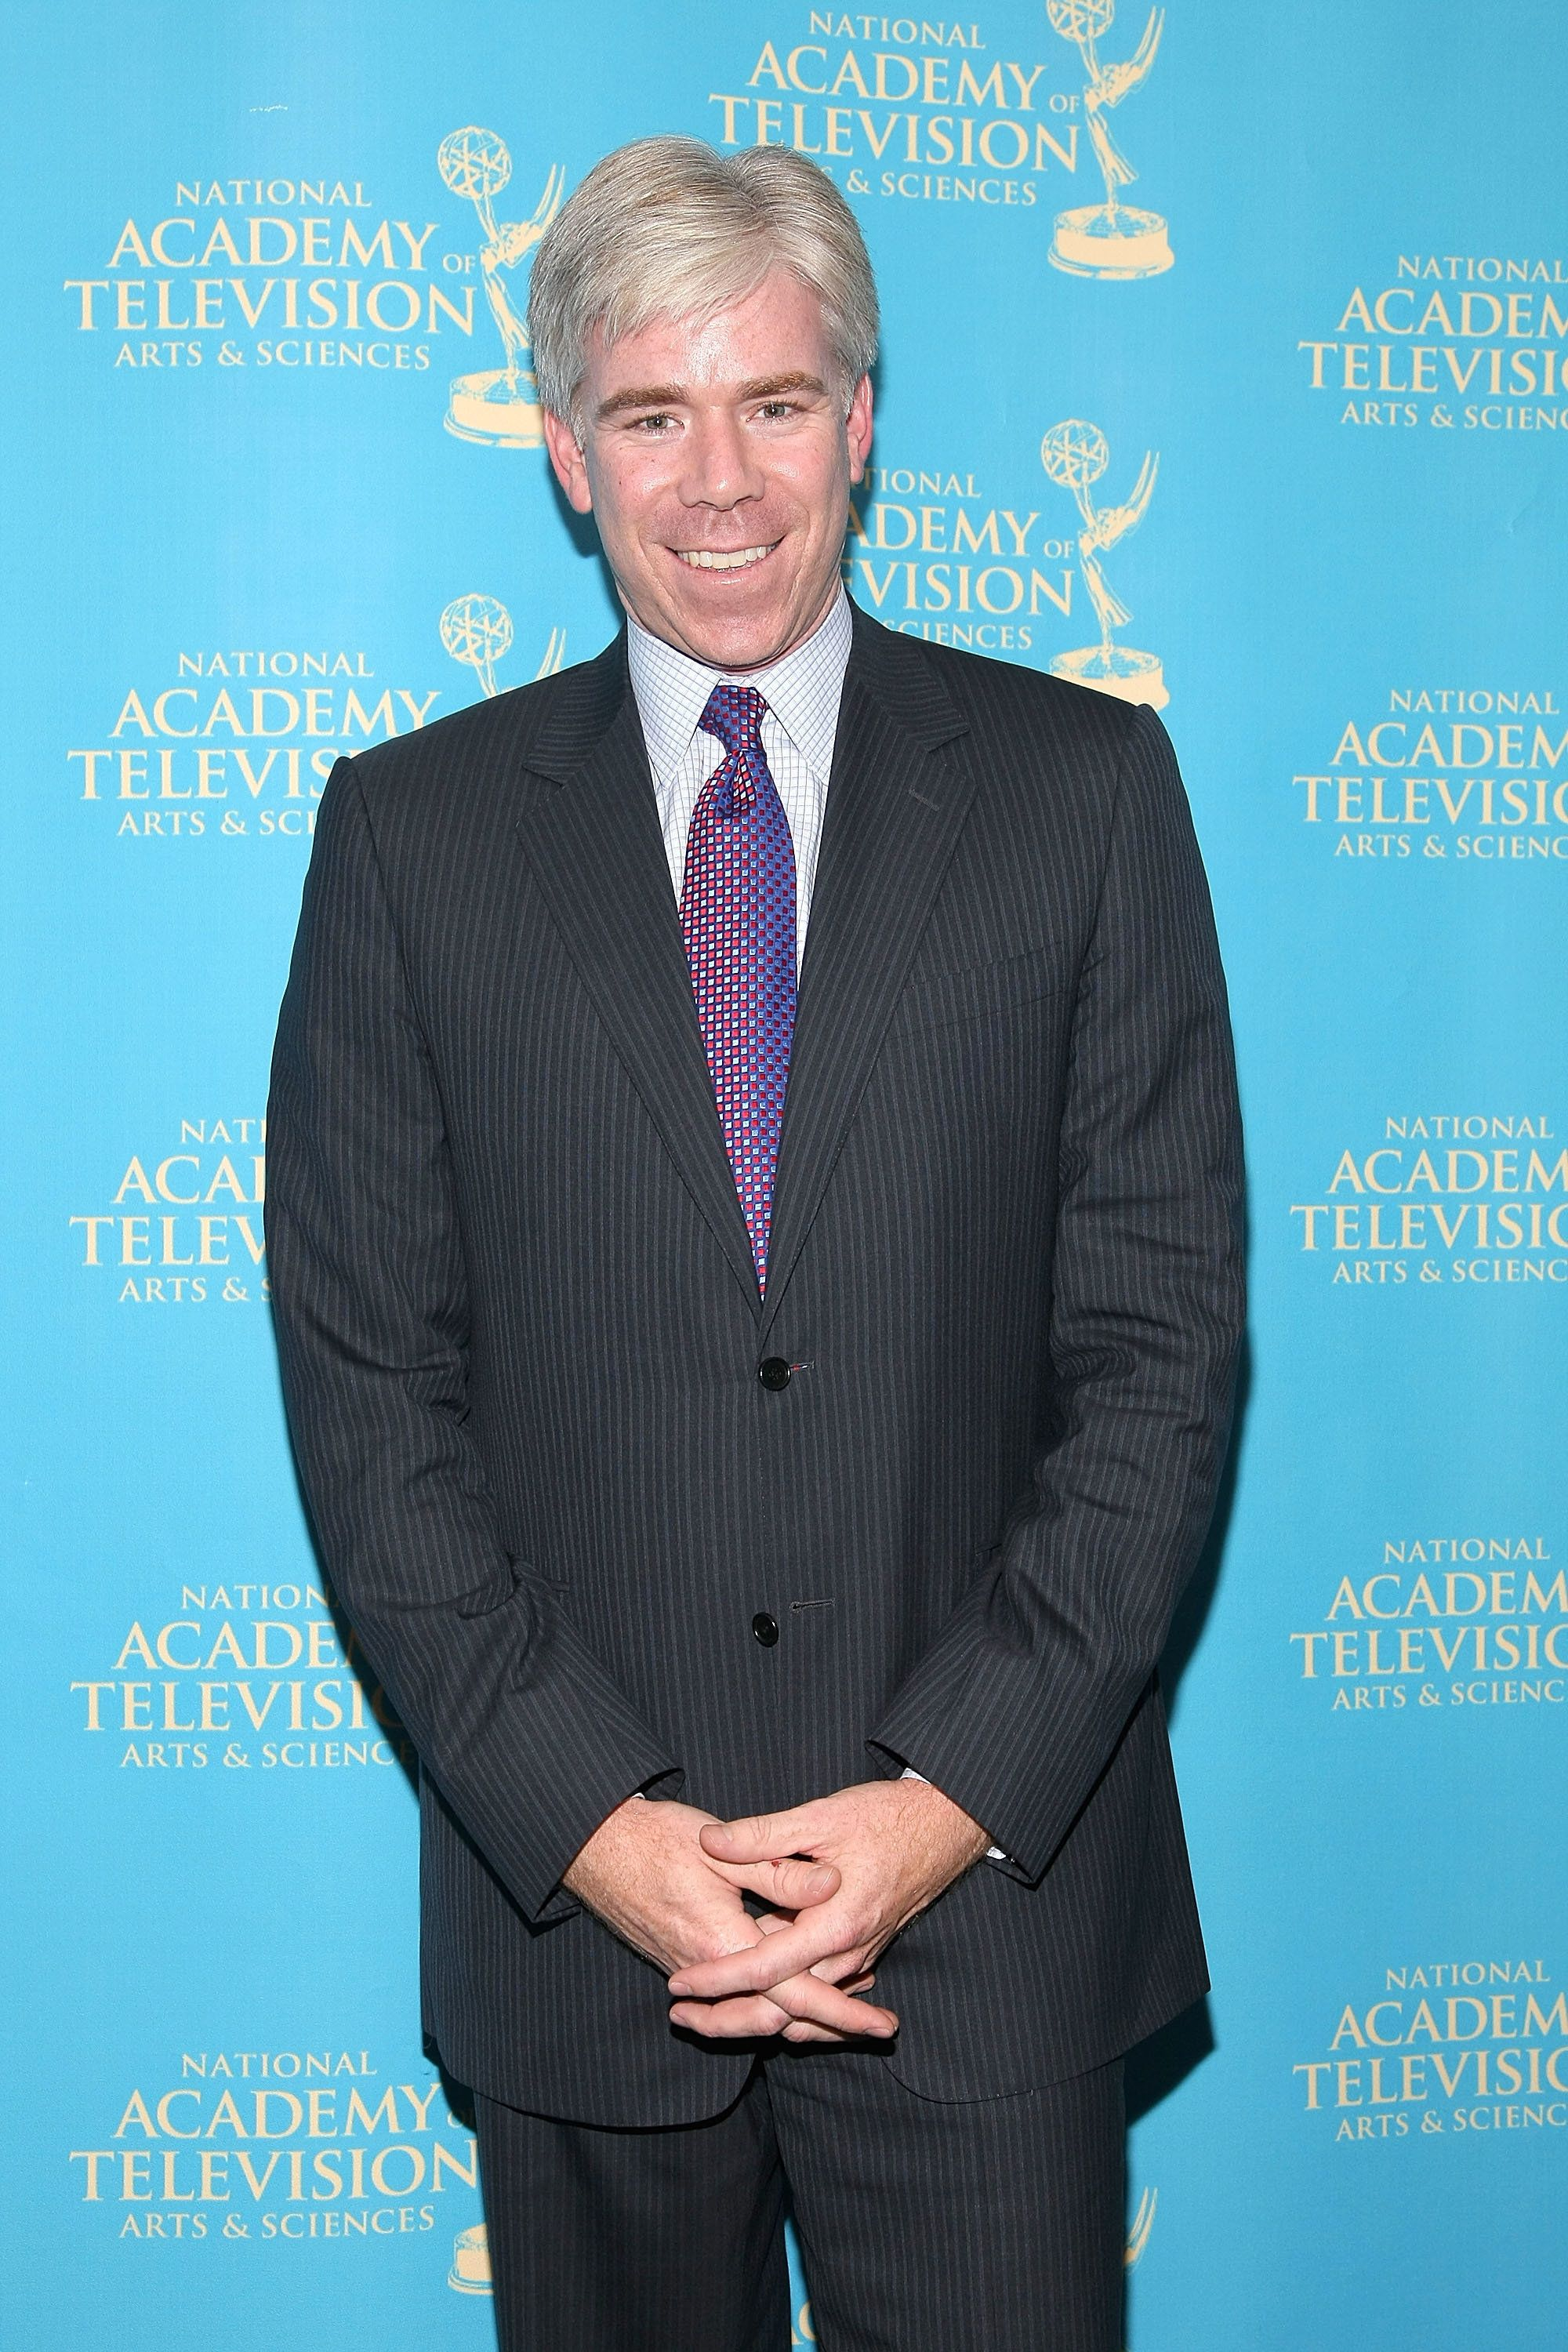 NEW YORK - SEPTEMBER 21:  News journalist and host David Gregory attends the 30th annual News & Documentary Emmy Awards at Frederick P. Rose Hall, Jazz at Lincoln Center on September 21, 2009 in New York City.  (Photo by Michael Loccisano/Getty Images)